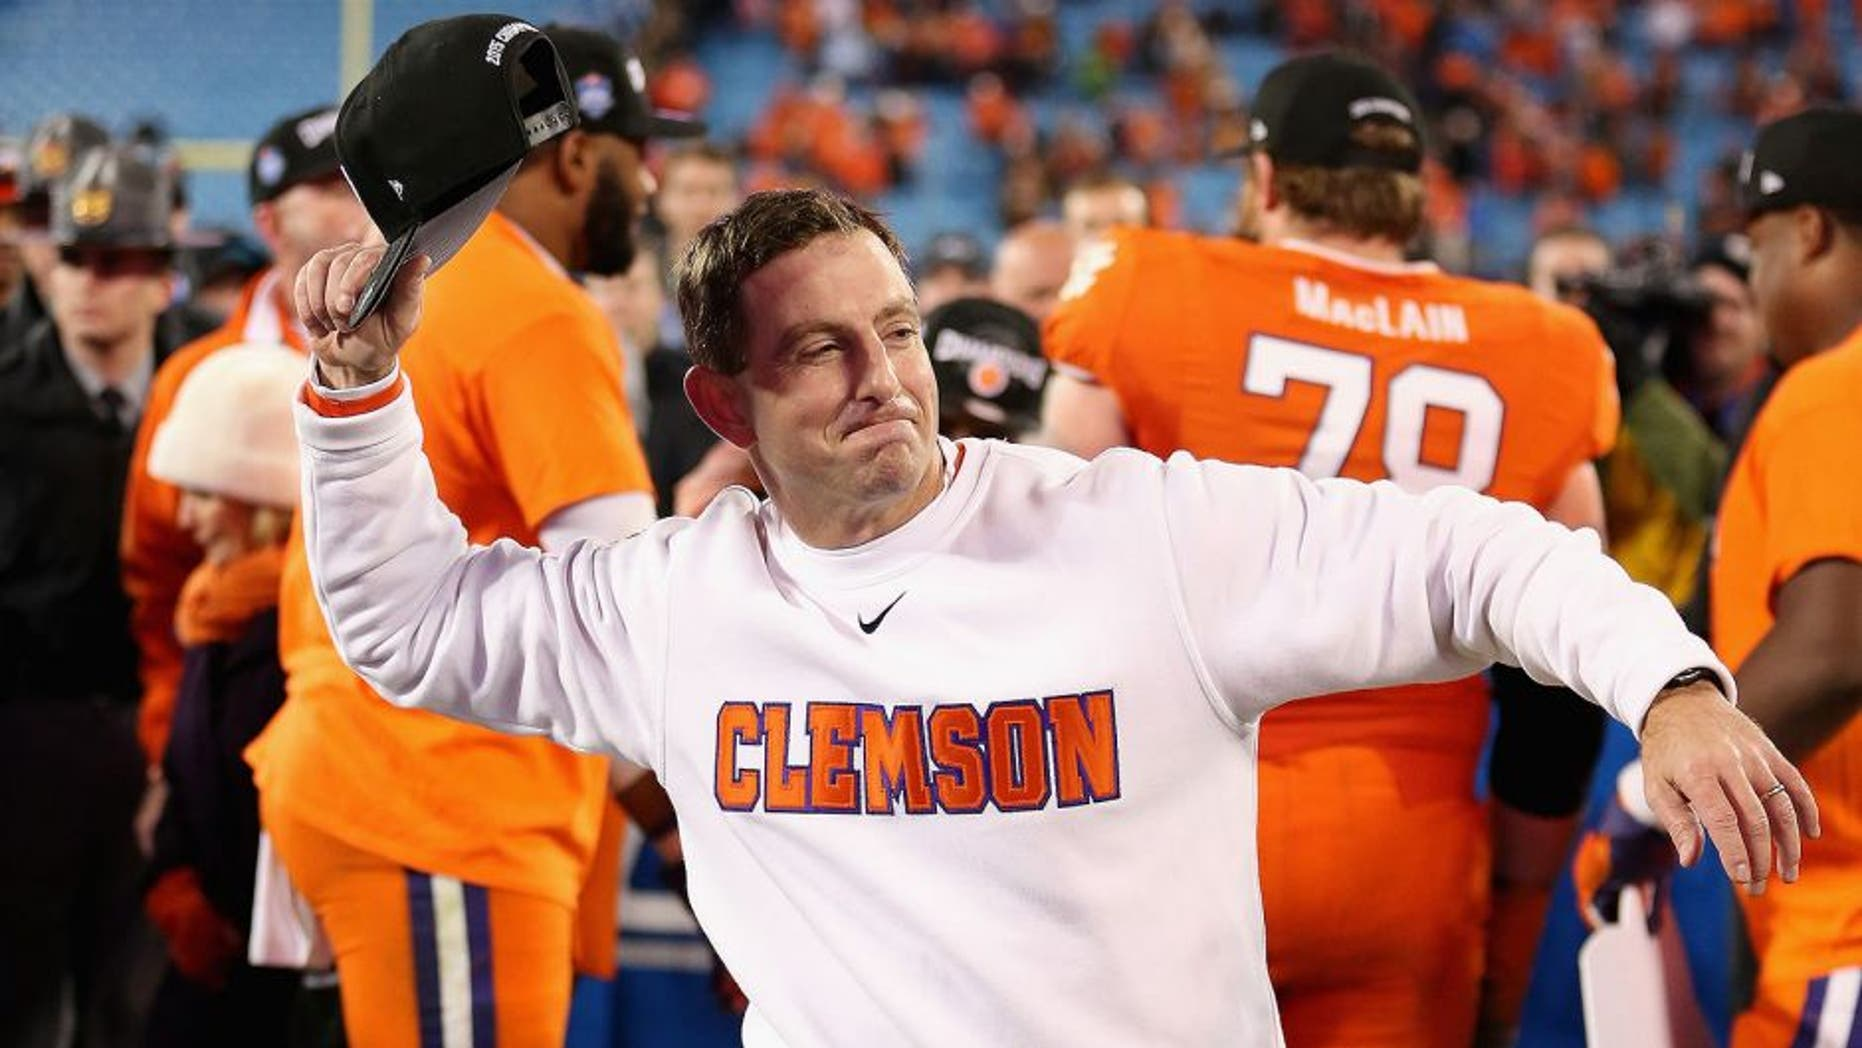 CHARLOTTE, NC - DECEMBER 05: Head coach Dabo Swinney of the Clemson Tigers celebrates after defeating the North Carolina Tar Heels 45-37 at the Atlantic Coast Conference Football Championship at Bank of America Stadium on December 5, 2015 in Charlotte, North Carolina. (Photo by Streeter Lecka/Getty Images)